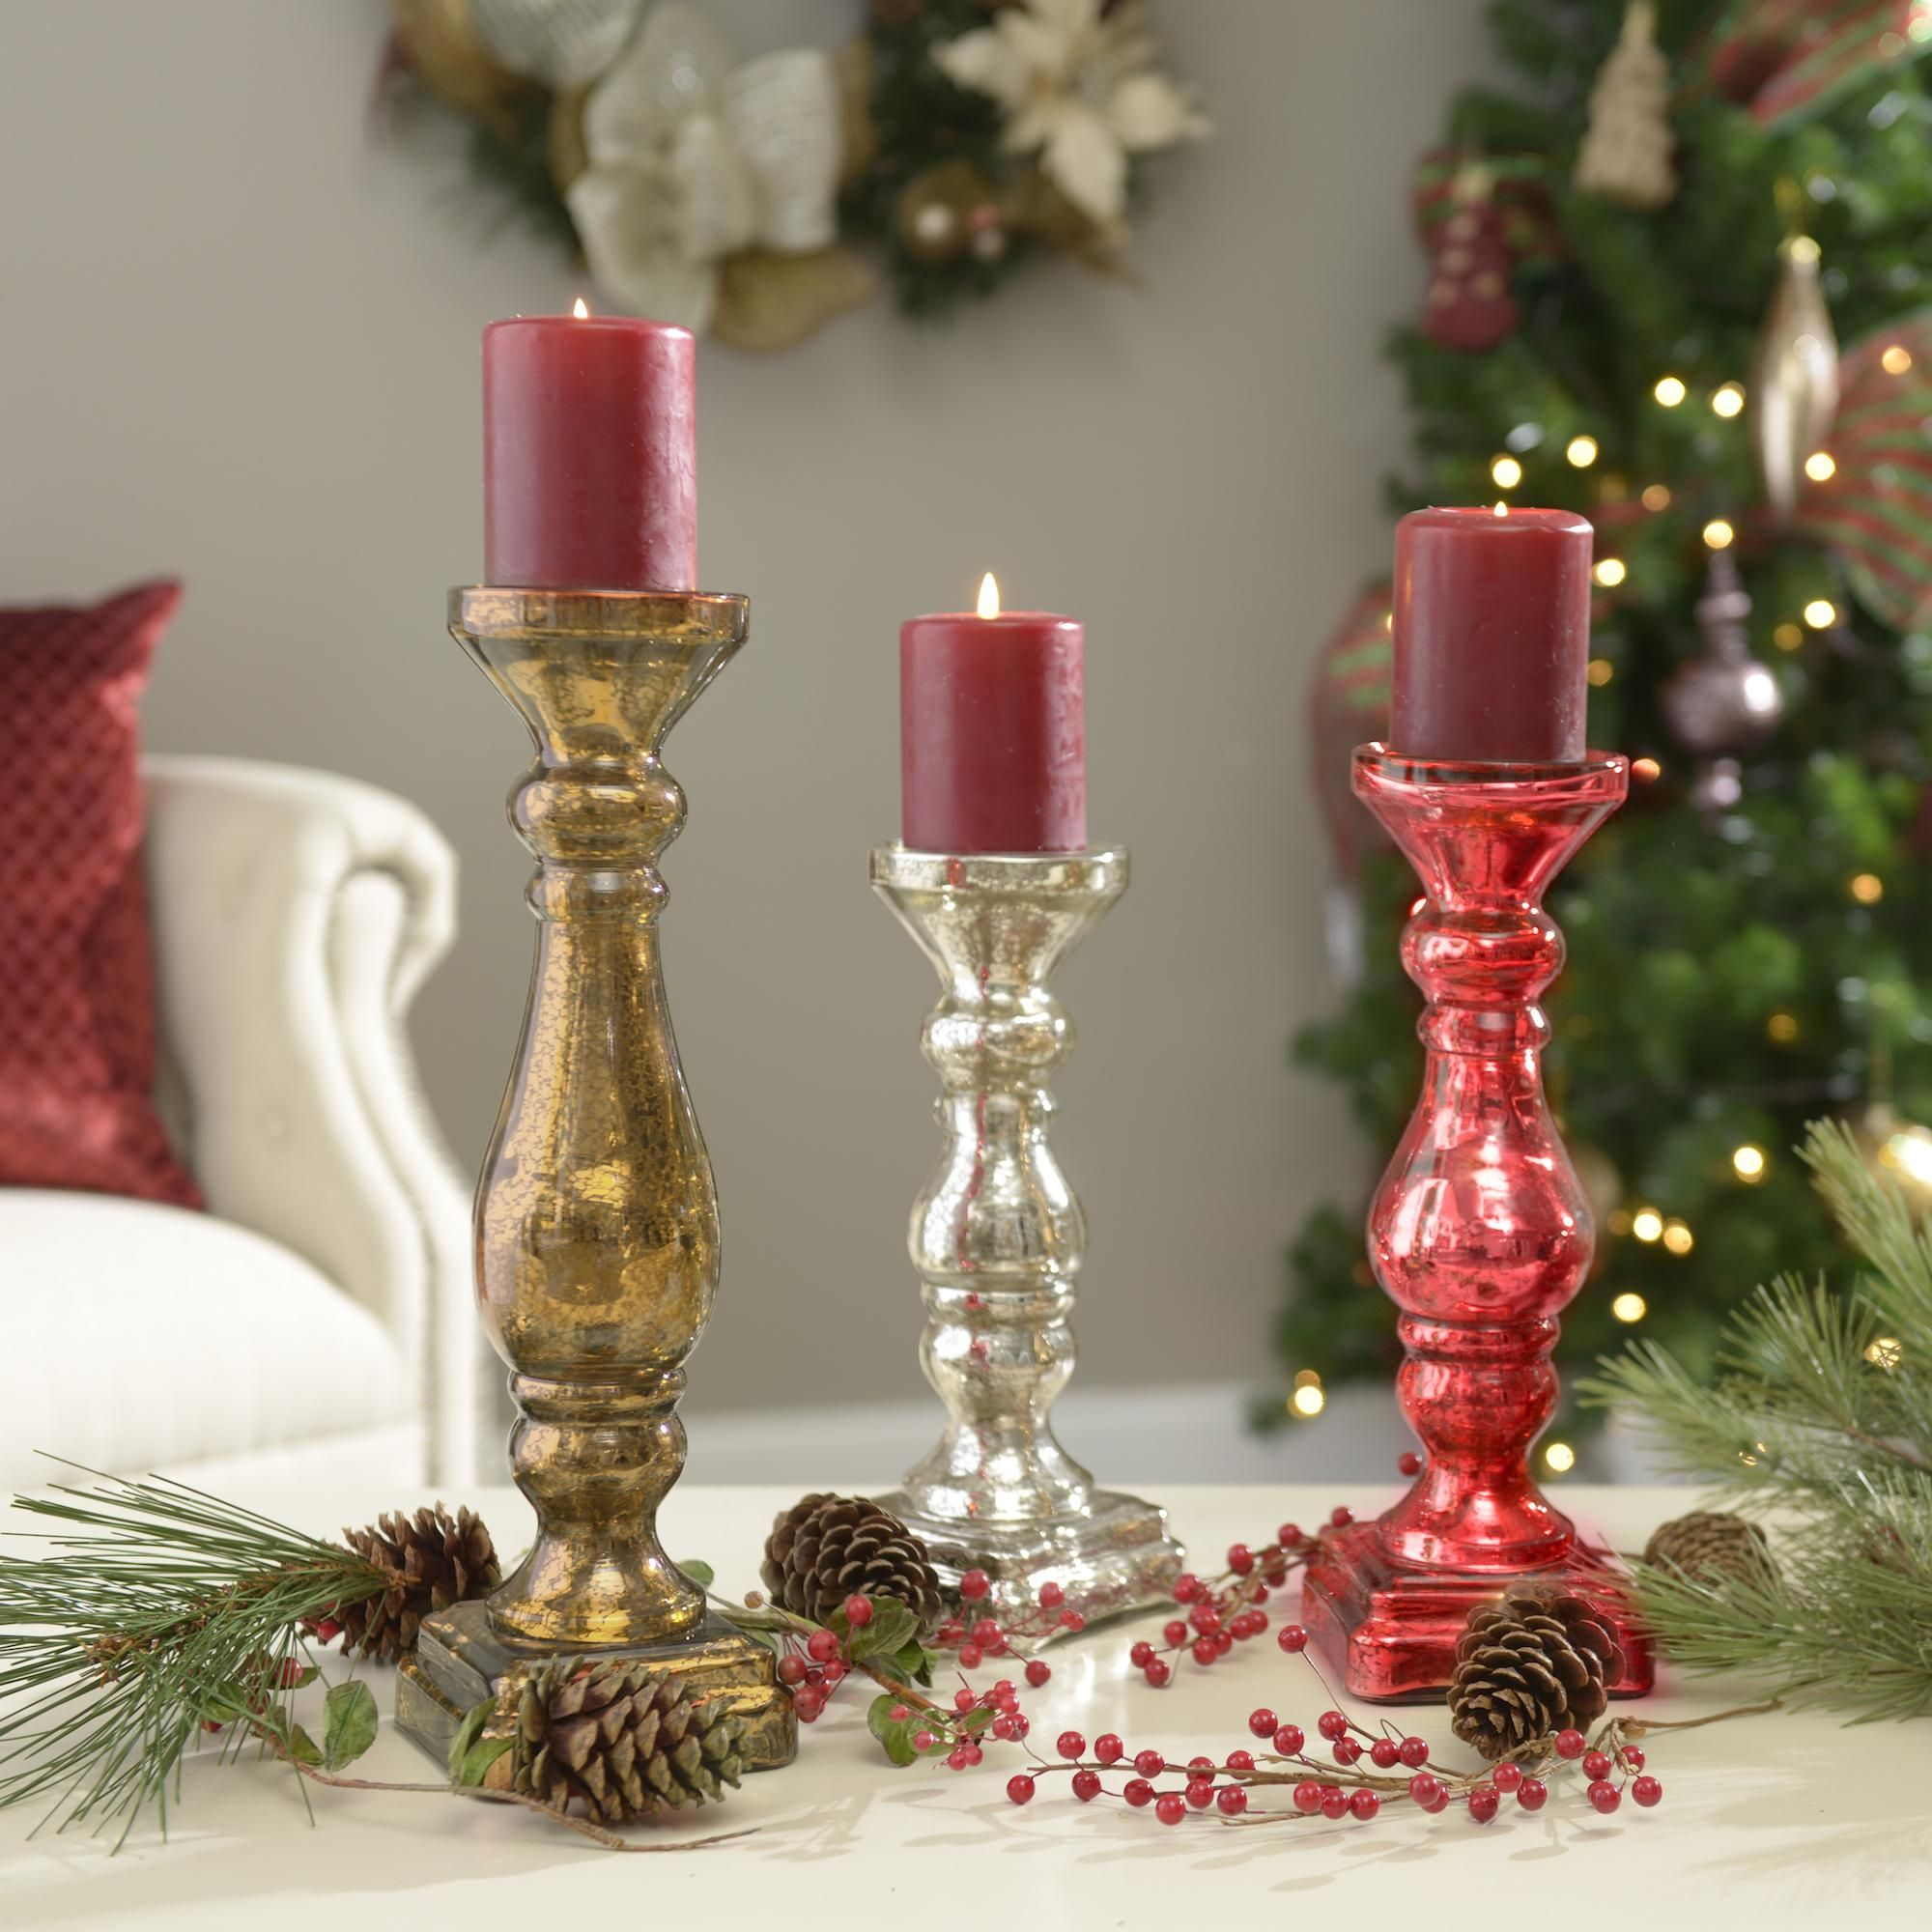 Add Shimmering Christmas Accents To Your Home For The Holidays